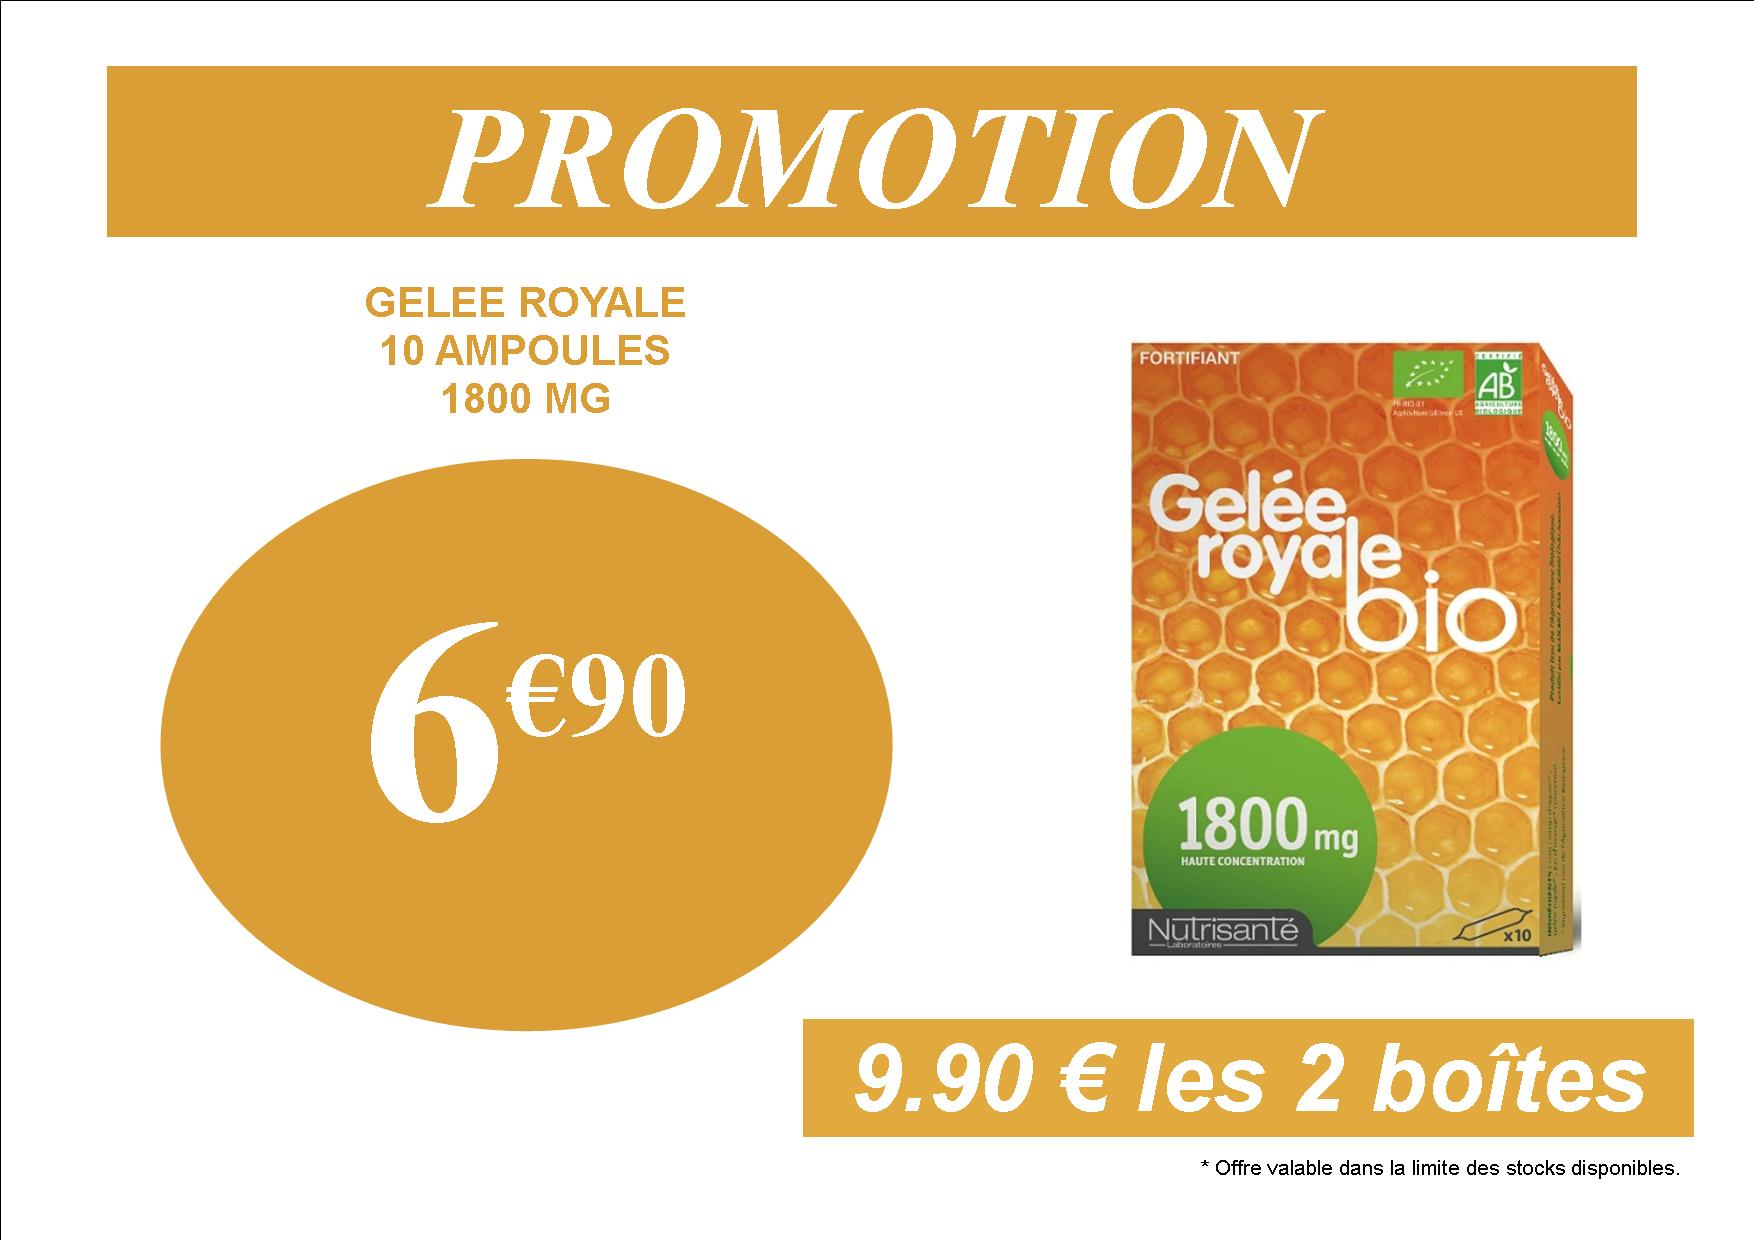 PROMOTION GELEE ROYALE PAS CHERE 6.90